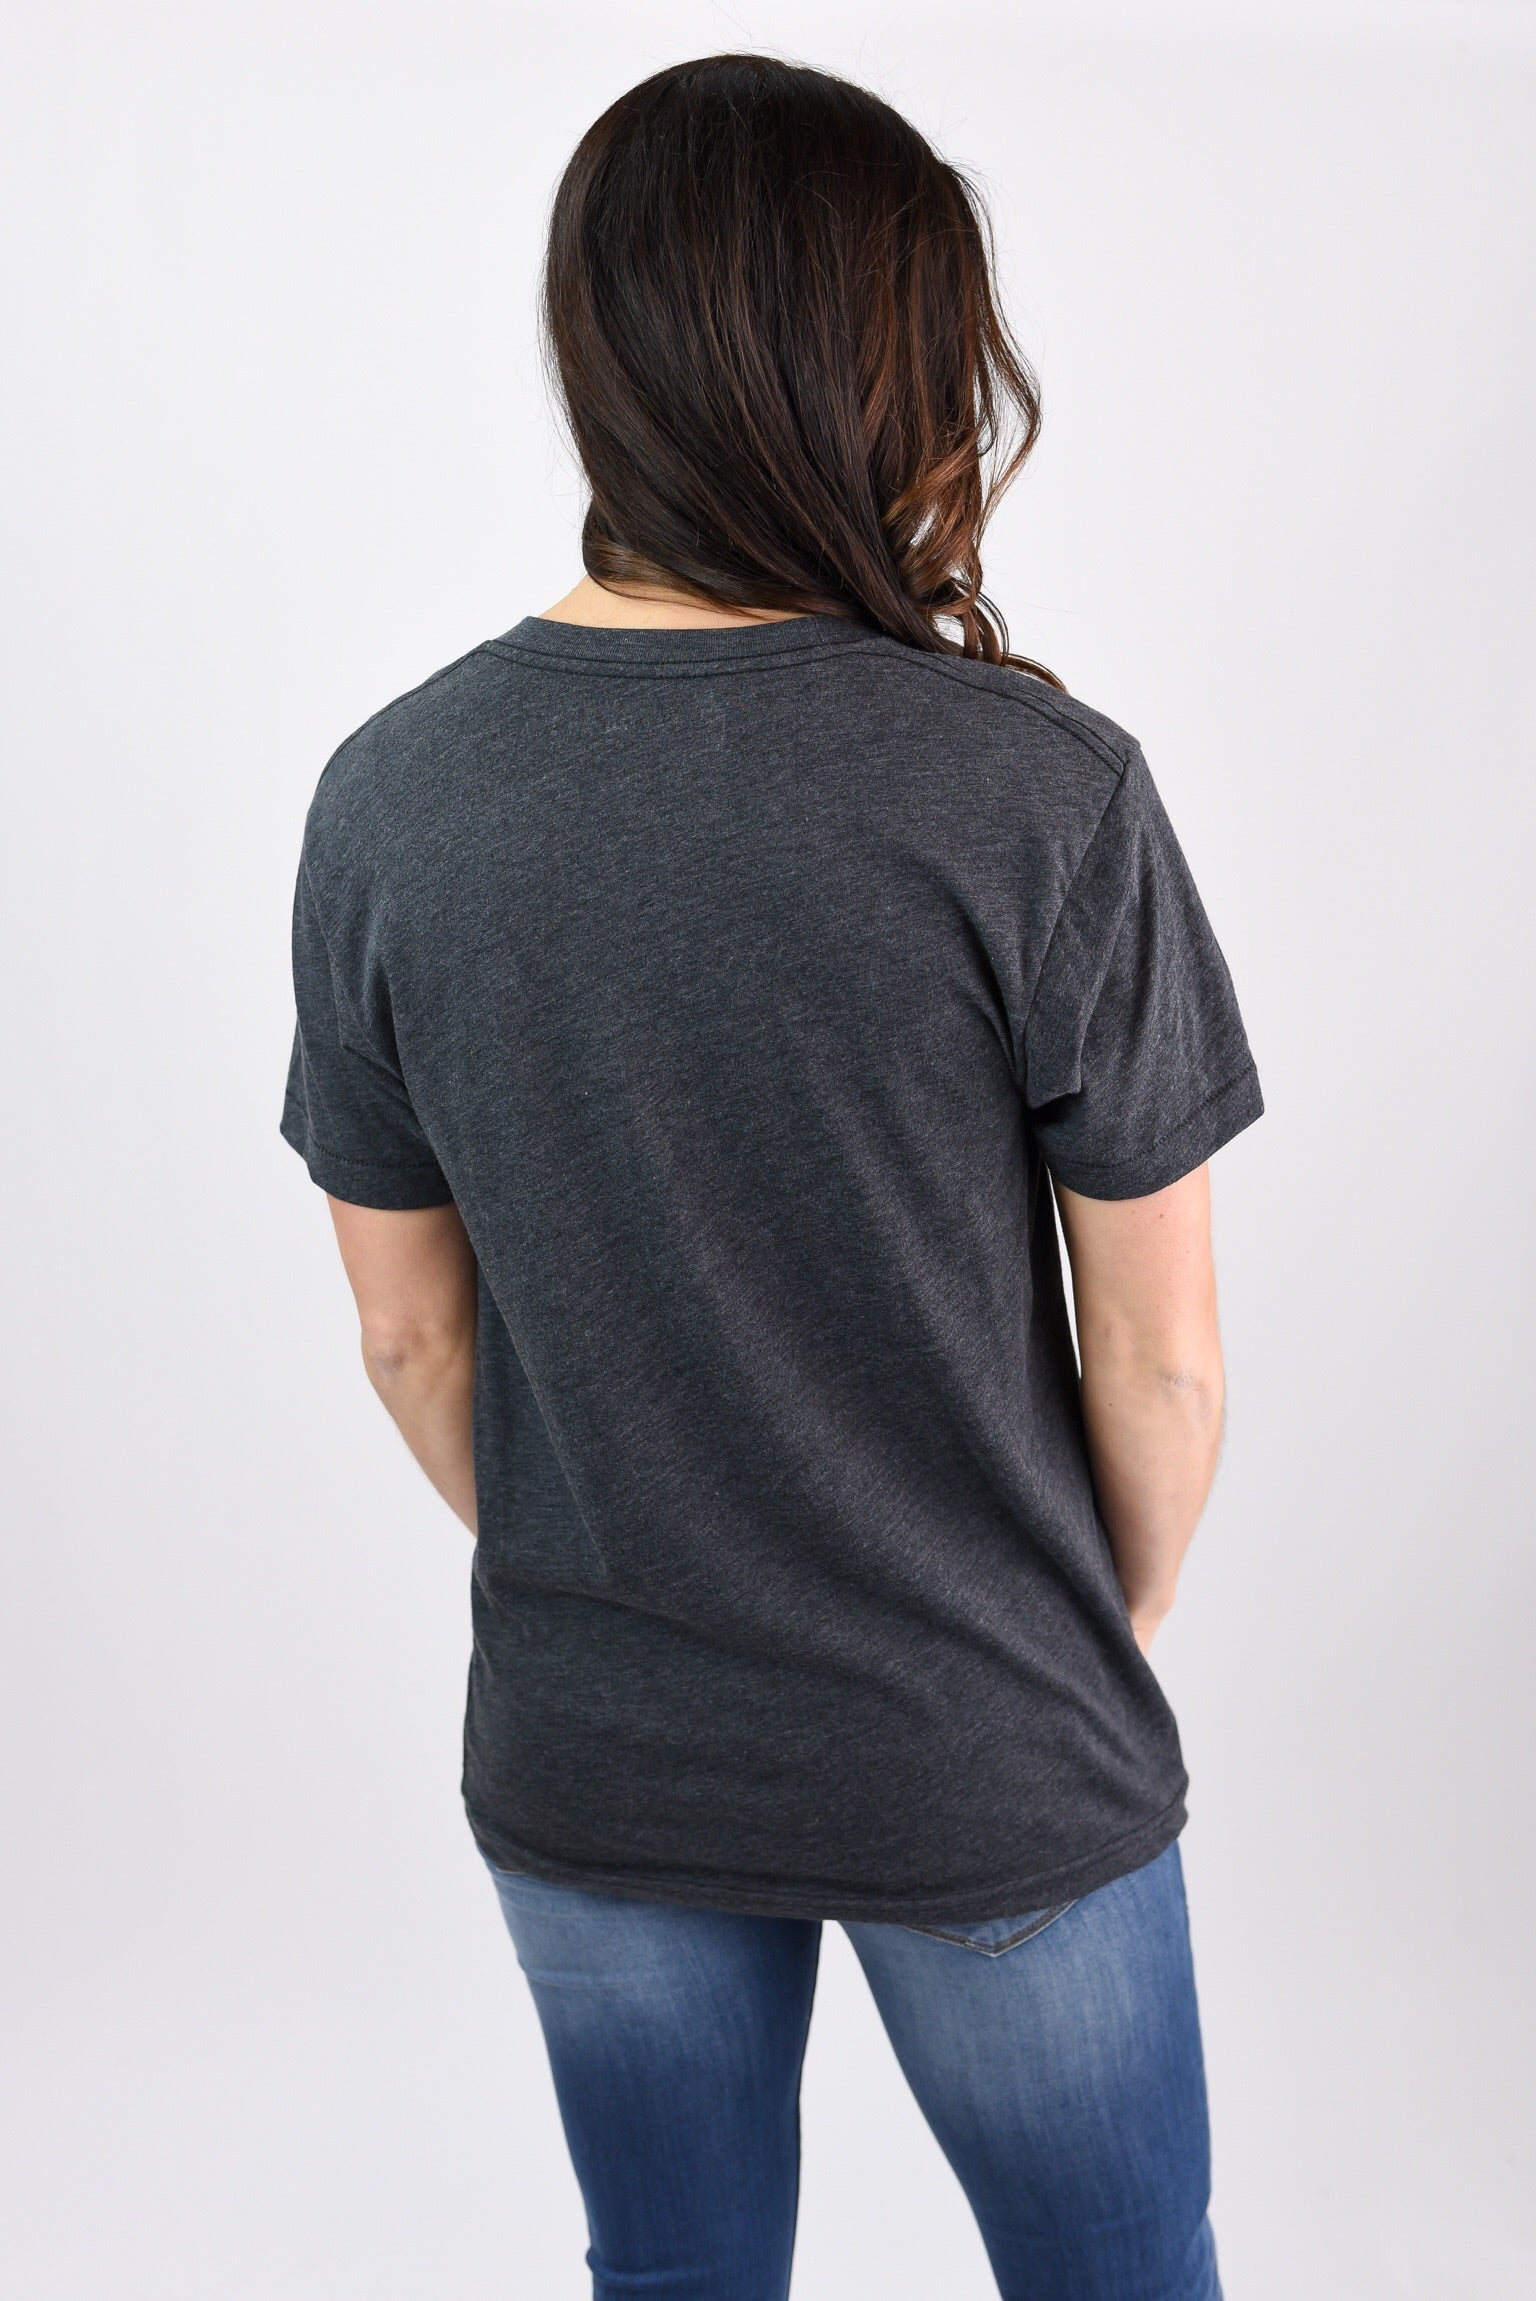 The Home Tee Charcoal Crew Neck (11380545678)